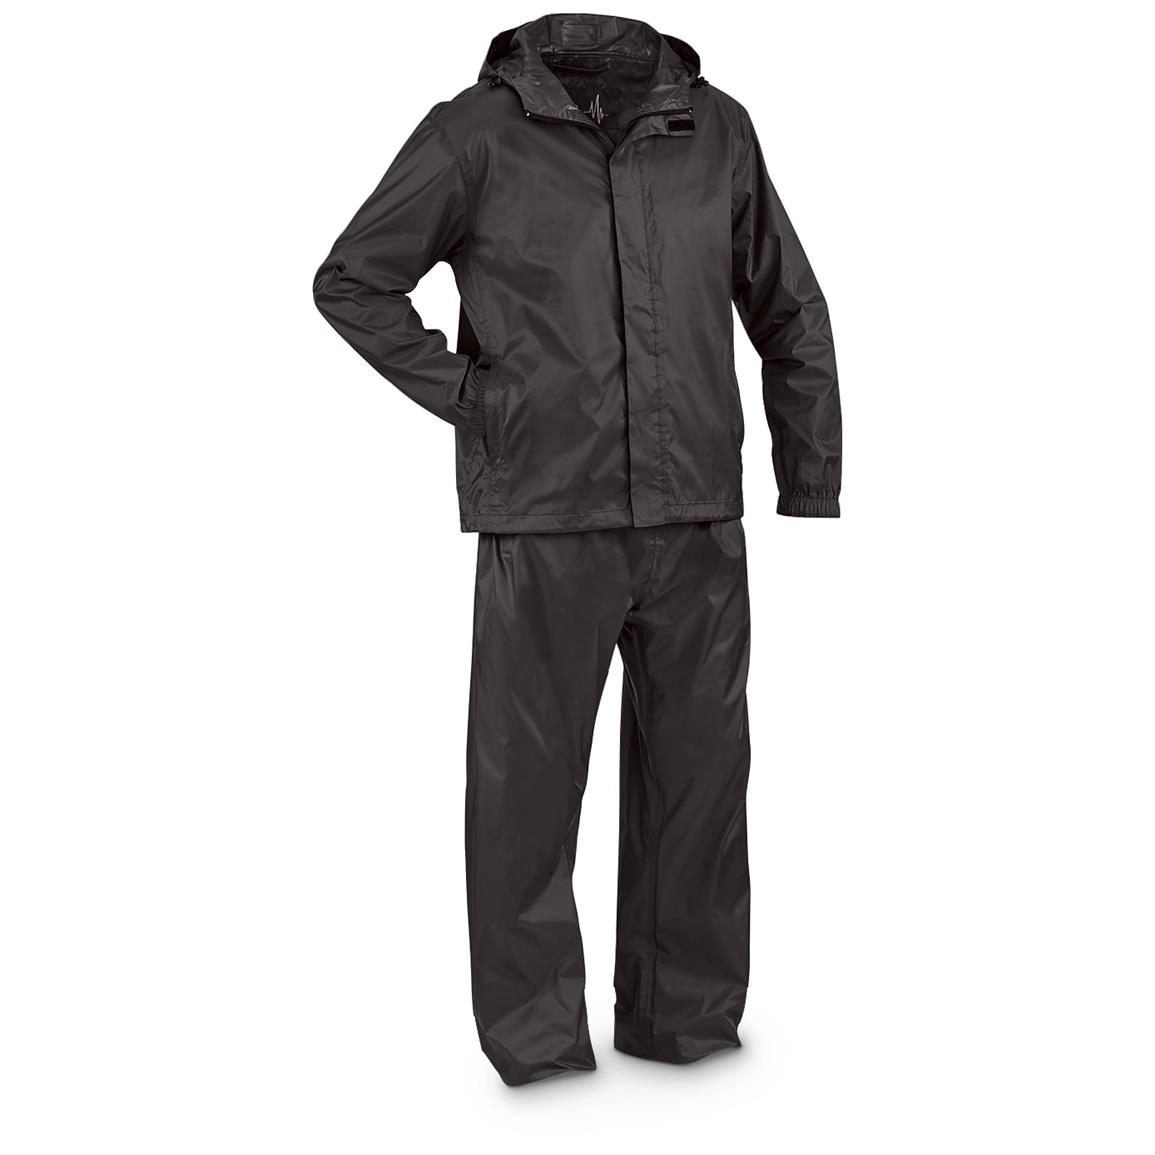 Waterproof, windproof and breathable